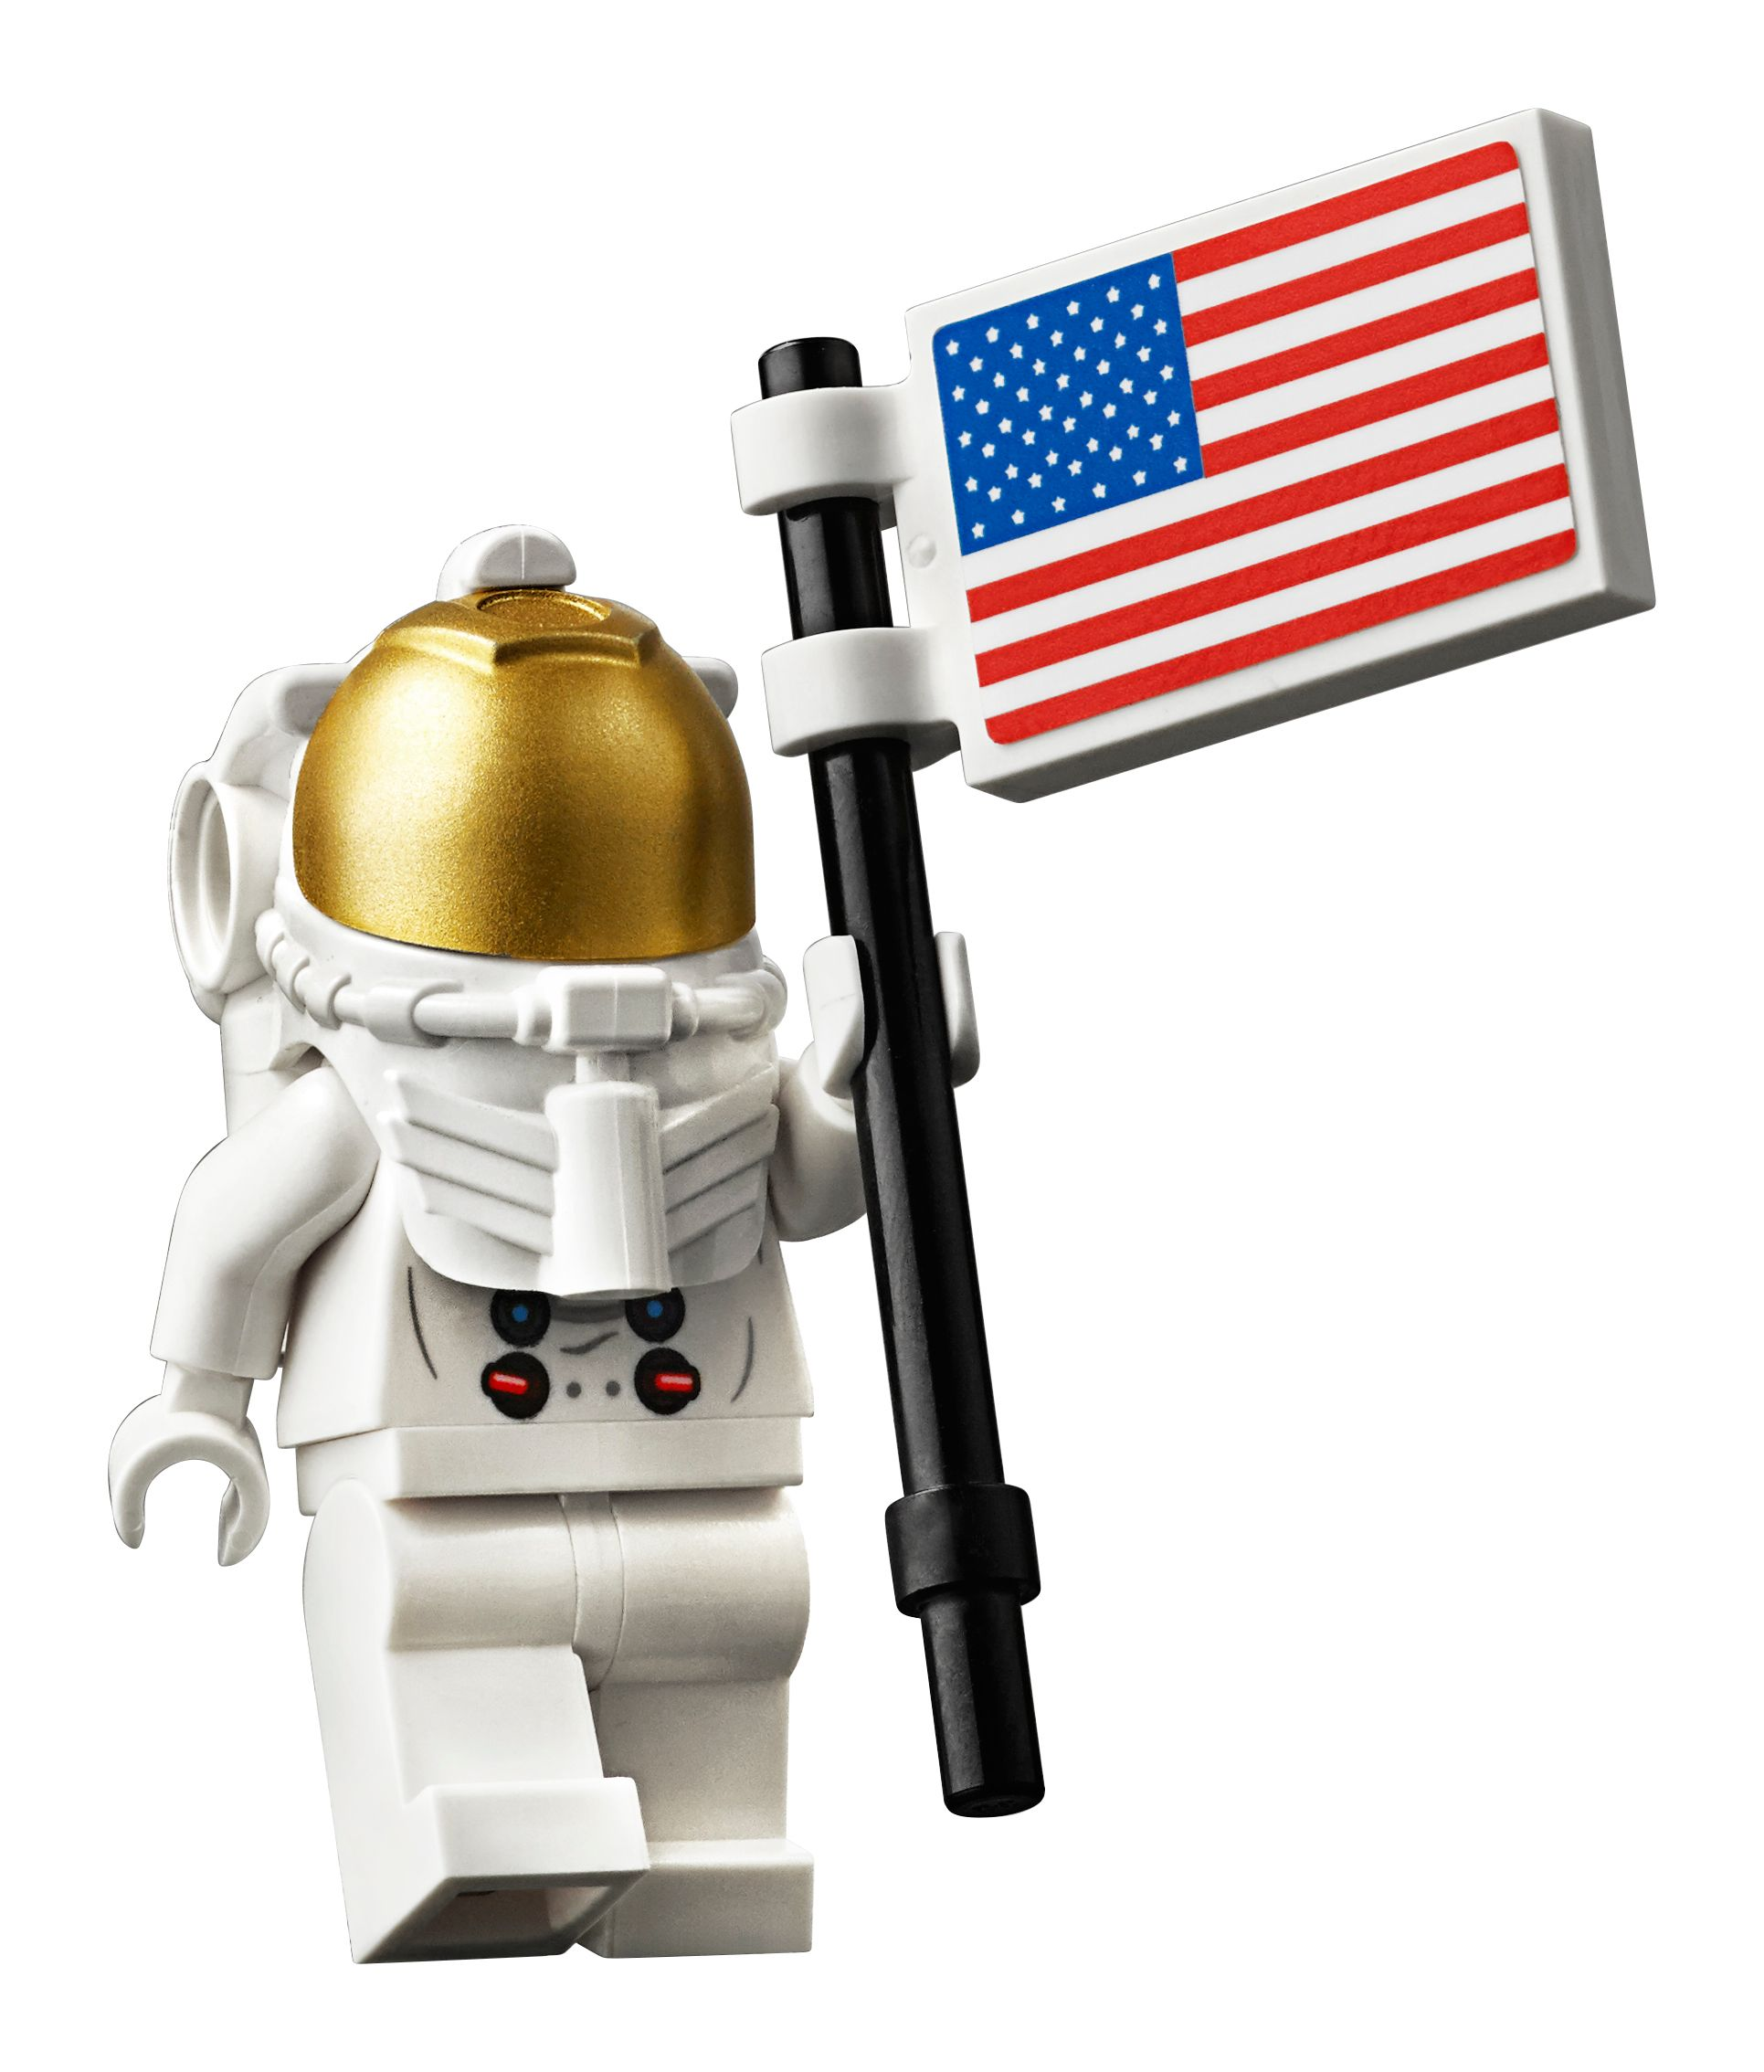 LEGO Advanced Models 10266 NASA Apollo 11 Mondlandefähre LEGO_10266_alt19.jpg